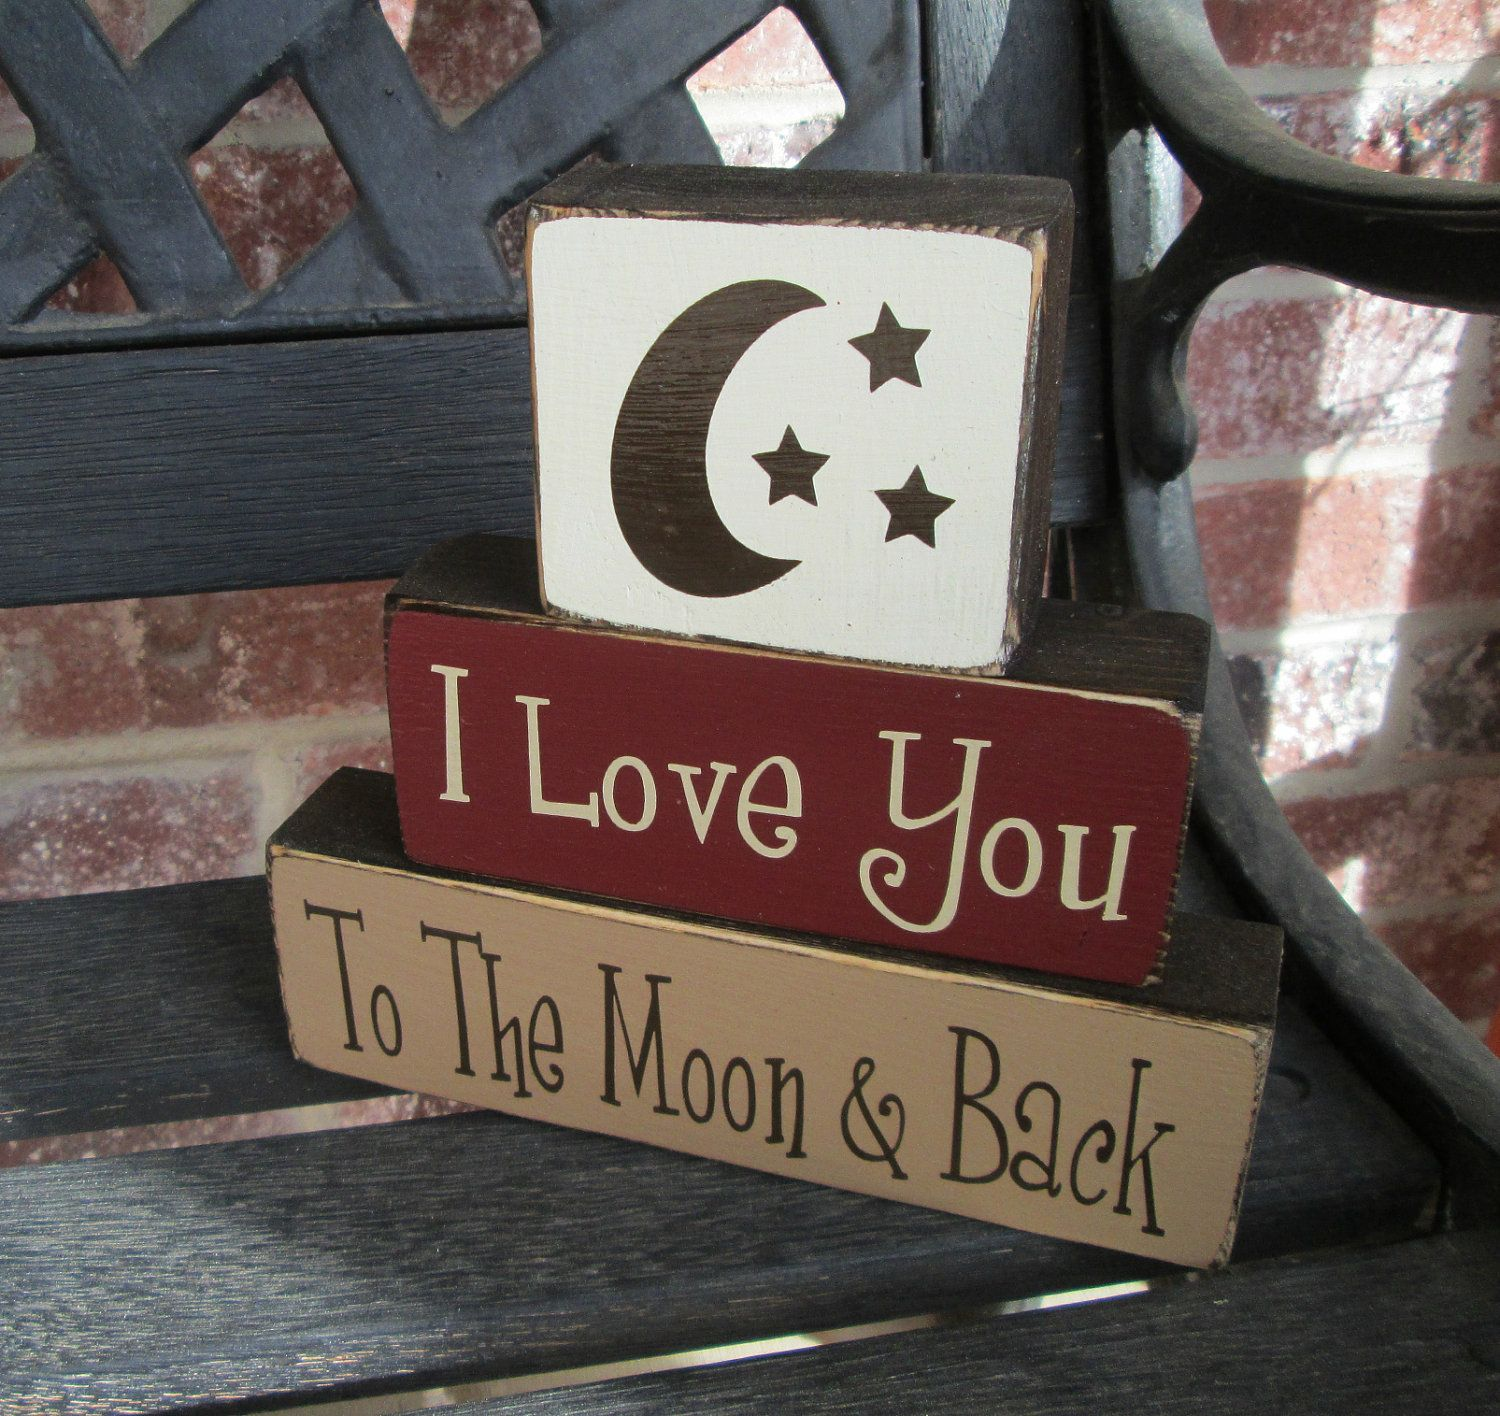 Child craft wooden blocks - Childrens Decorative Wood Blocks I Love You To The Moon And Back 13 00